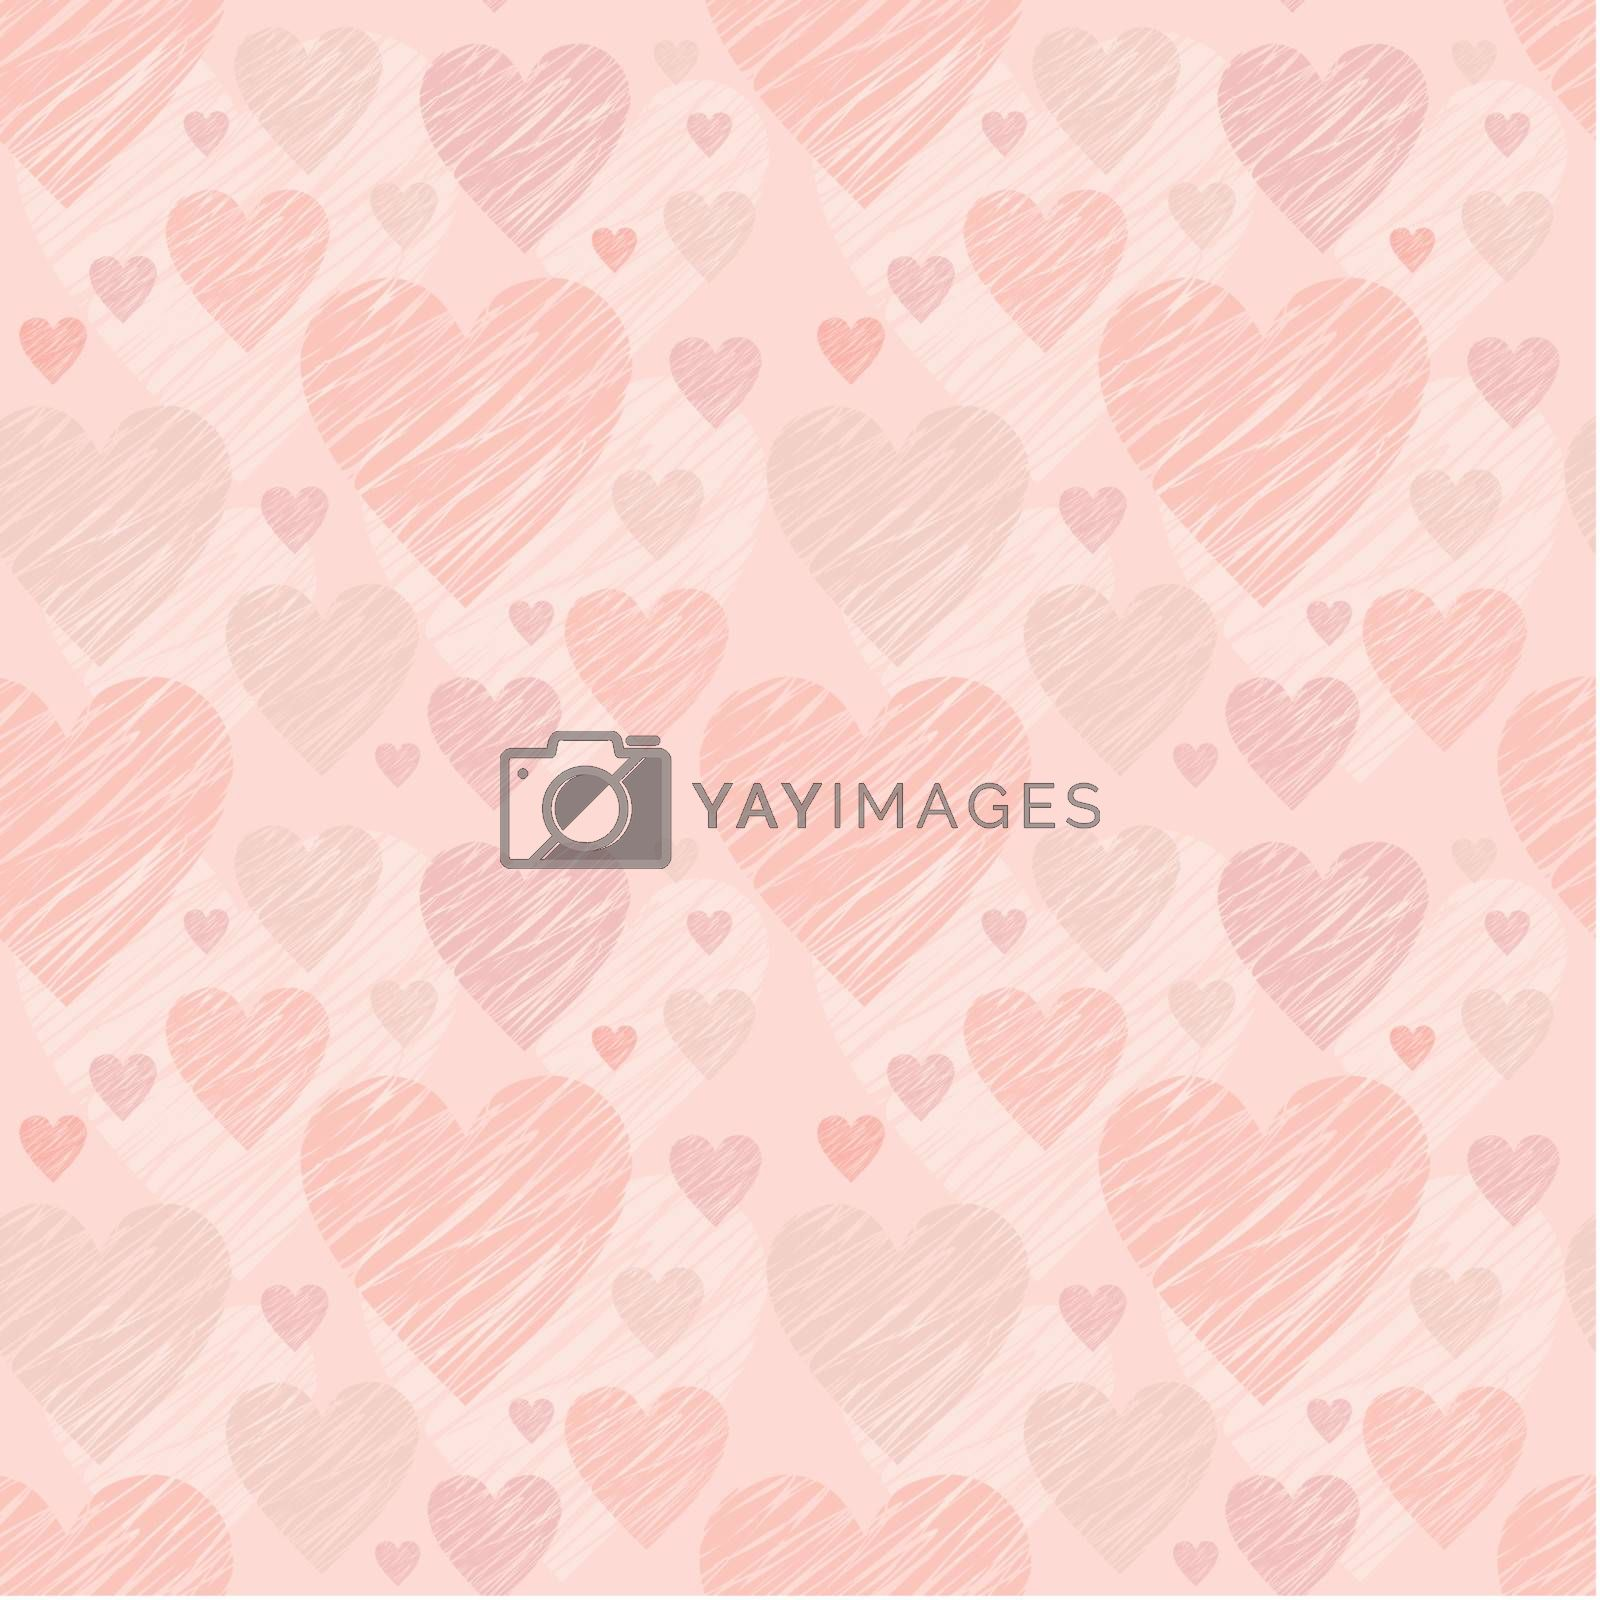 Image of Seamless pattern with hearts.